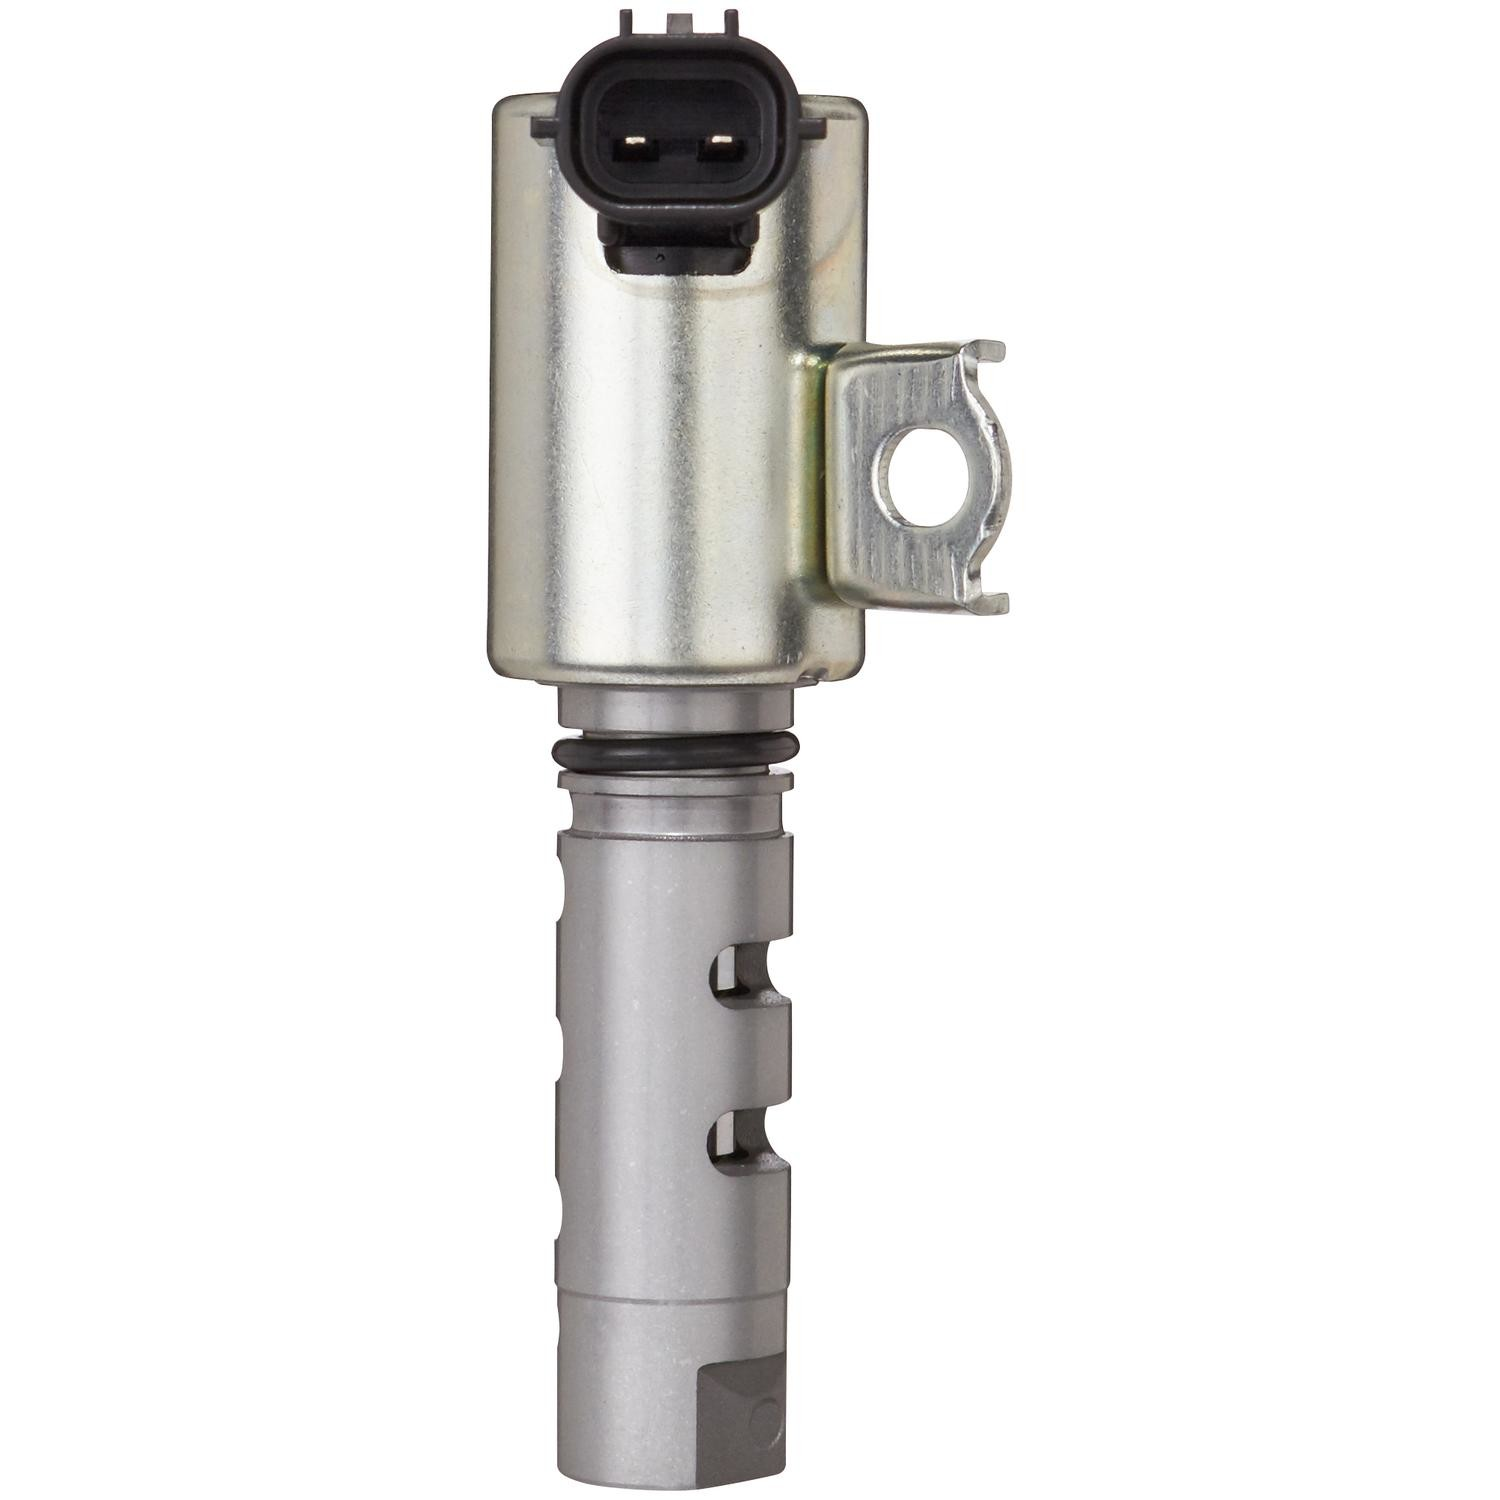 SPECTRA PREMIUM IND, INC. - Engine Variable Valve Timing (VVT) Solenoid (Exhaust (Left)) - SPC VTS1044